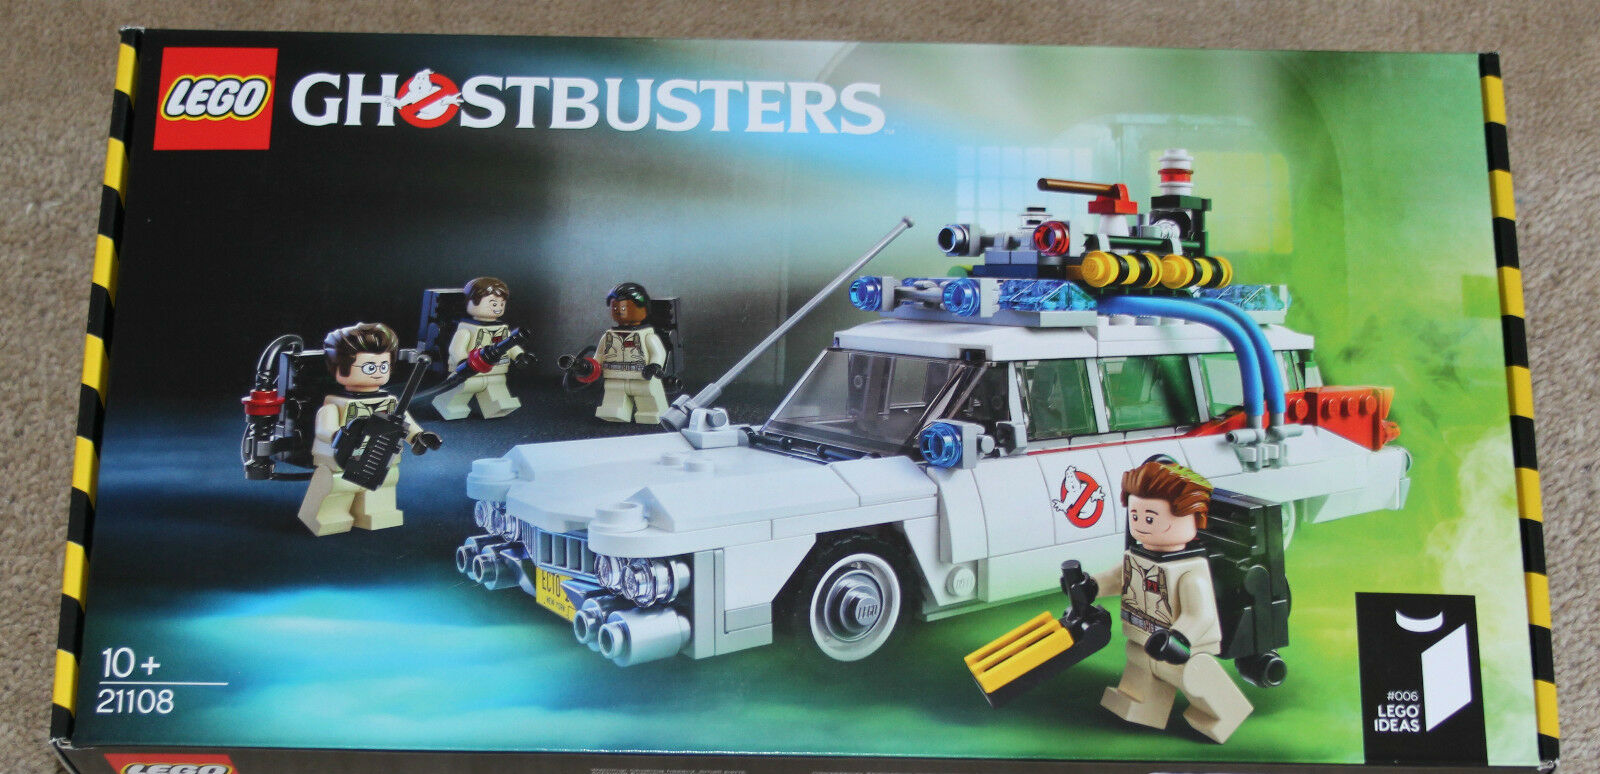 LEGO IDEAS 006 006 006 - GHOSTBUSTERS - set 21108 BRAND NEW SEALED - hard to find e7a5c7